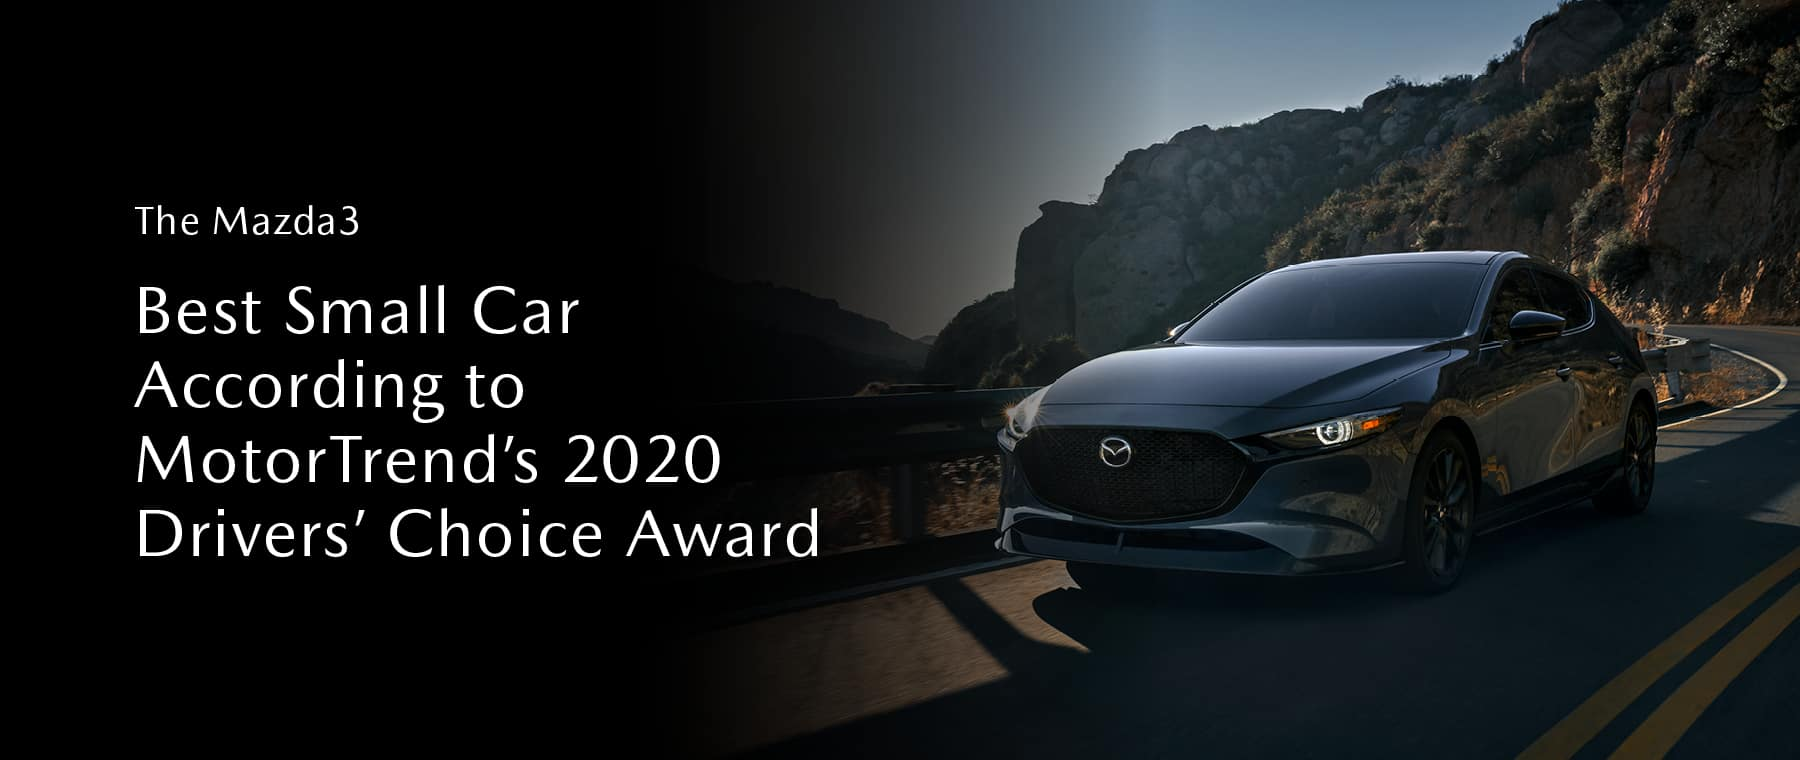 Tha Mazda3. Best small car according to MotorTrend's 2020 Drivers' Choice Award